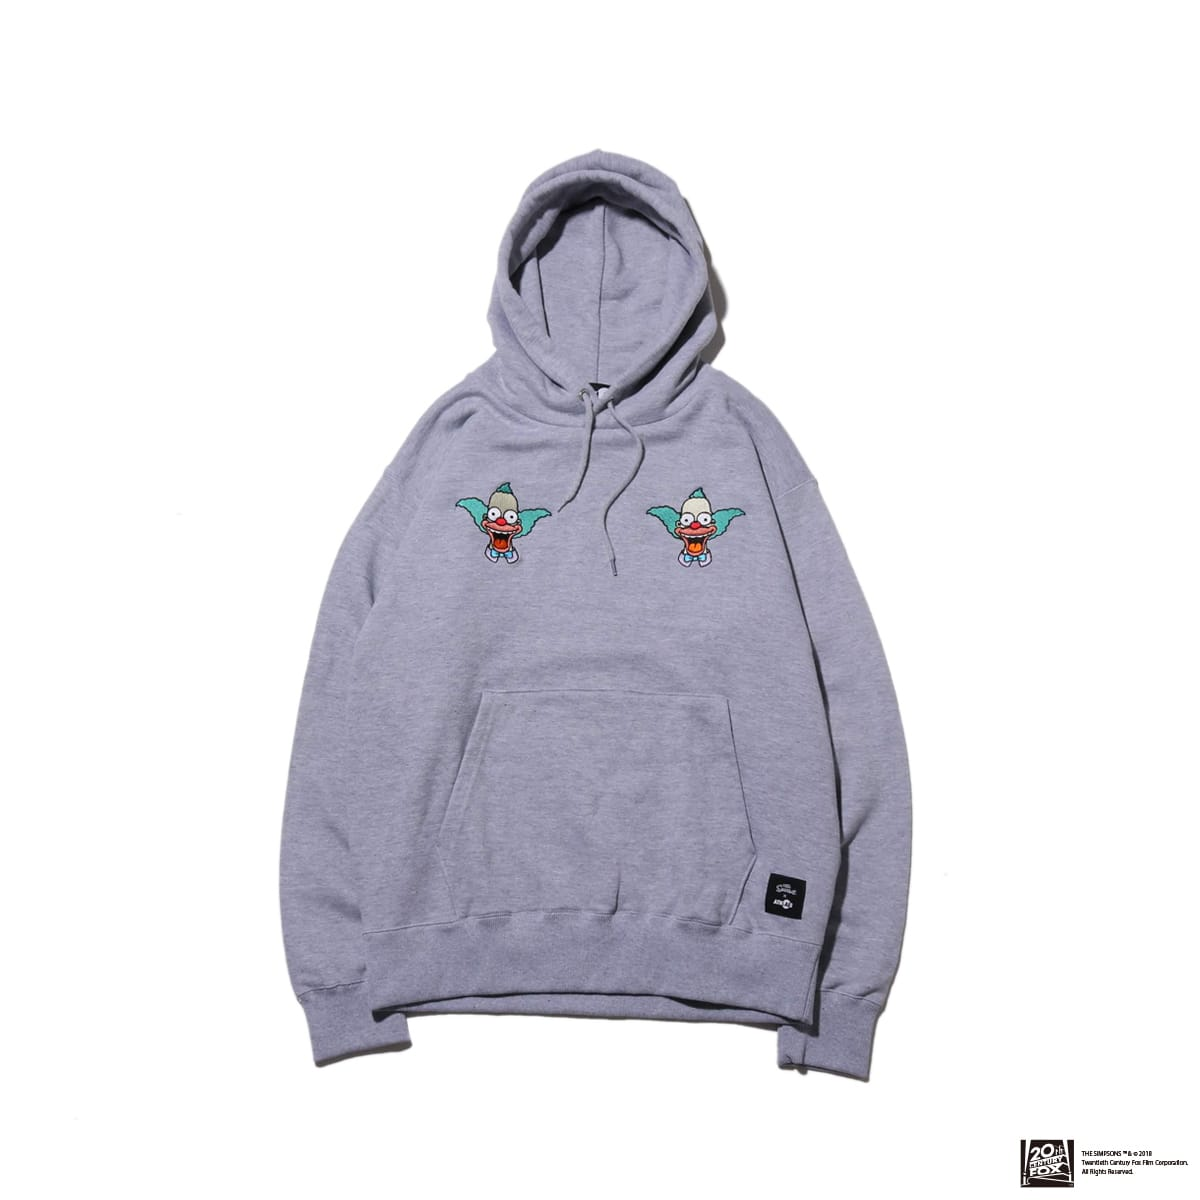 THE SIMPSONS x ATMOS LAB KRUSTY EMBROIDERY HOODIE  GRAY 18FW-I_photo_large